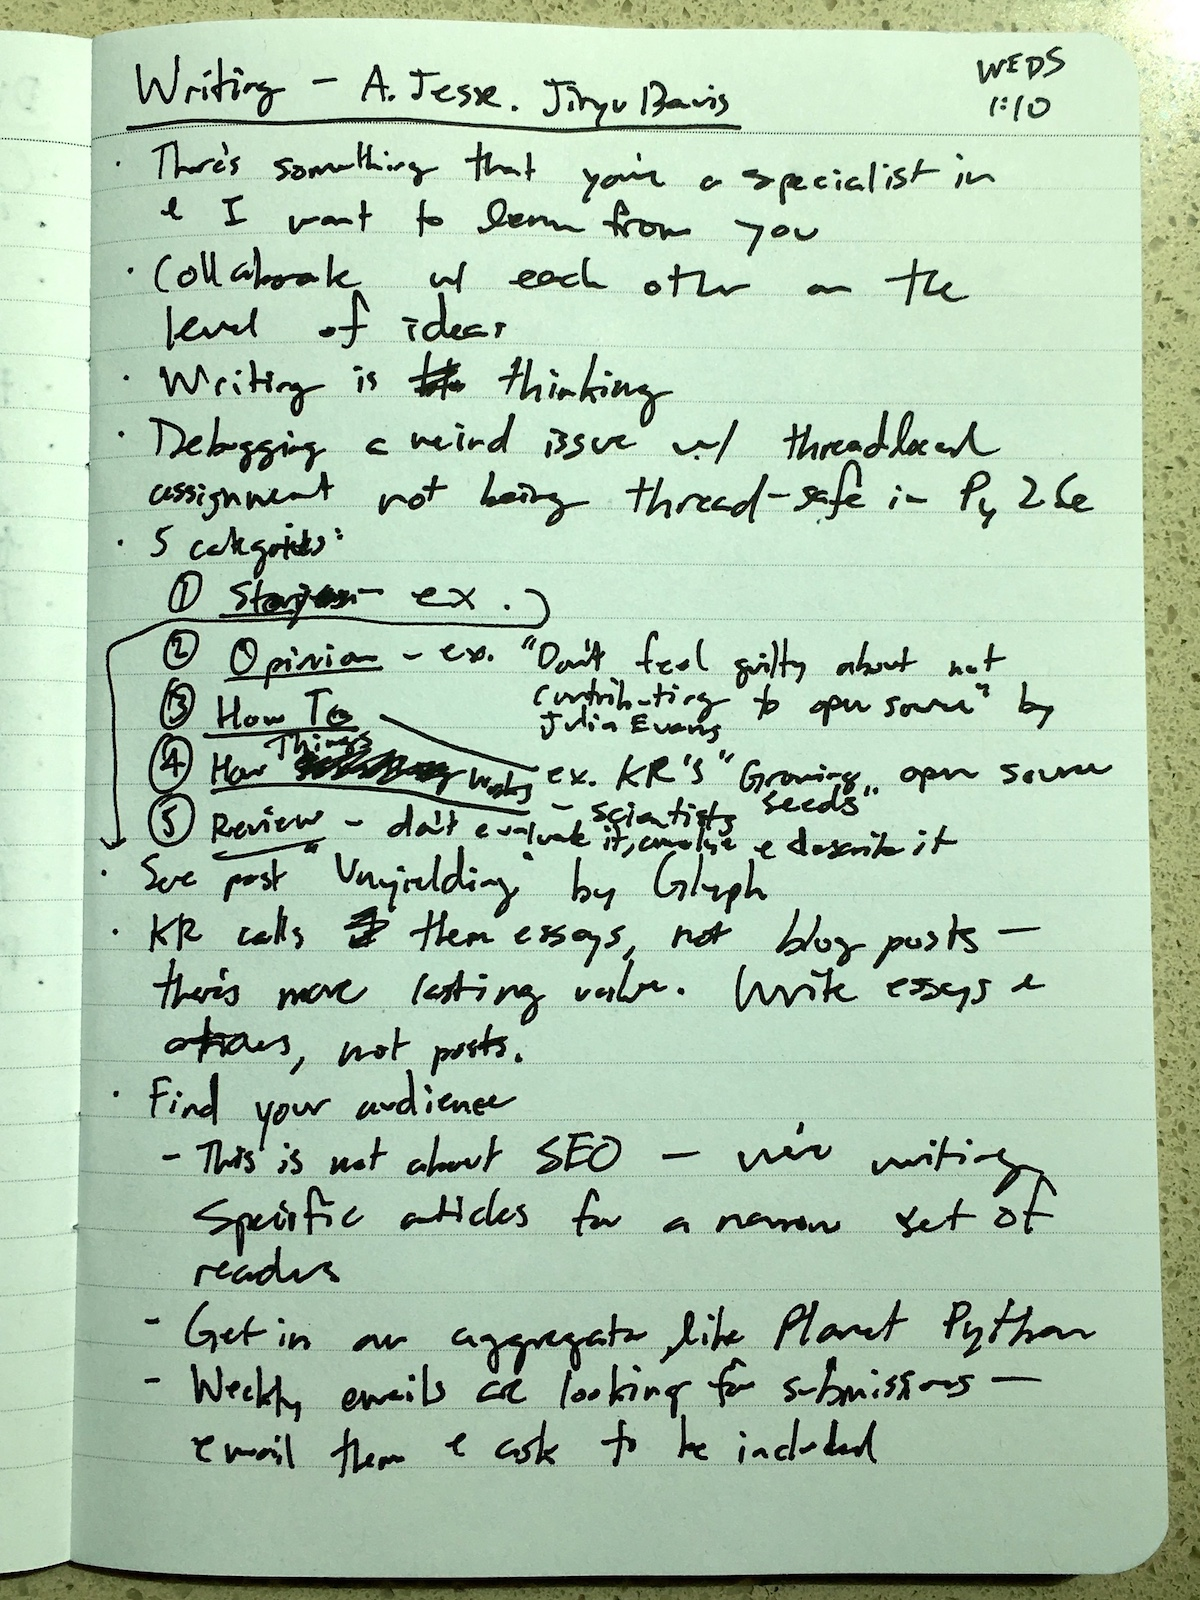 My notes from the talk, page 1